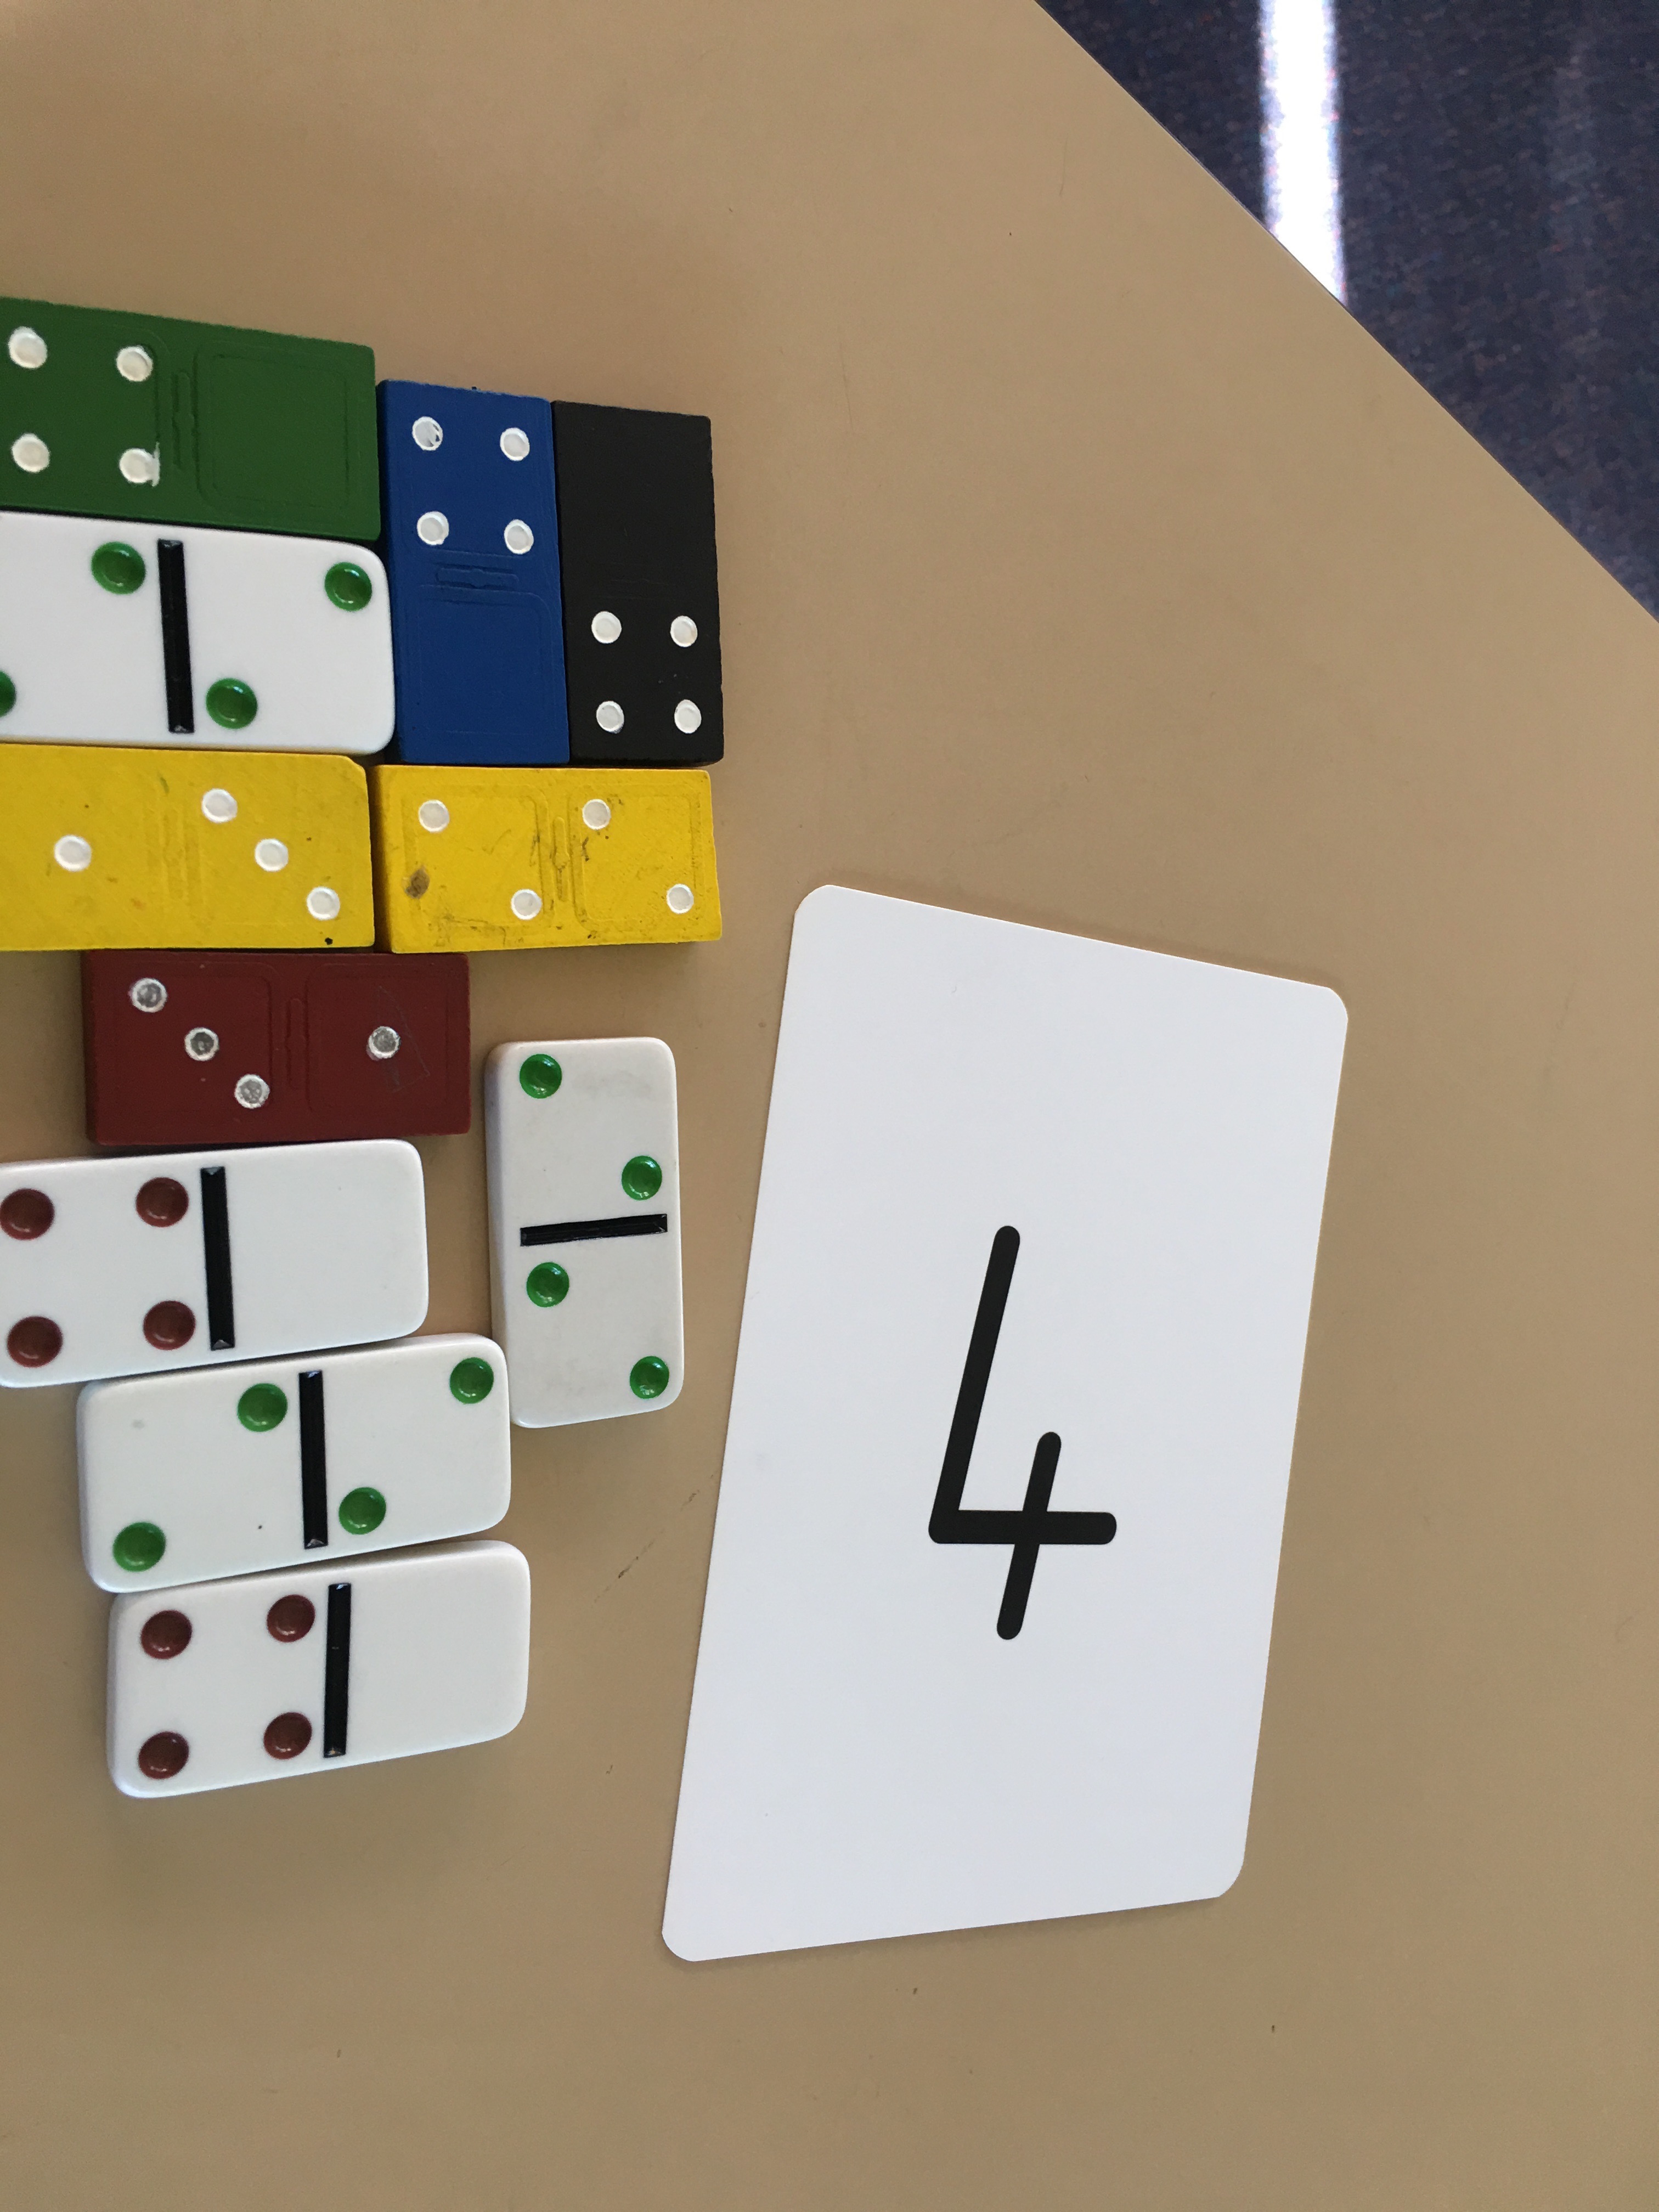 Adding Numbers With Dominoes